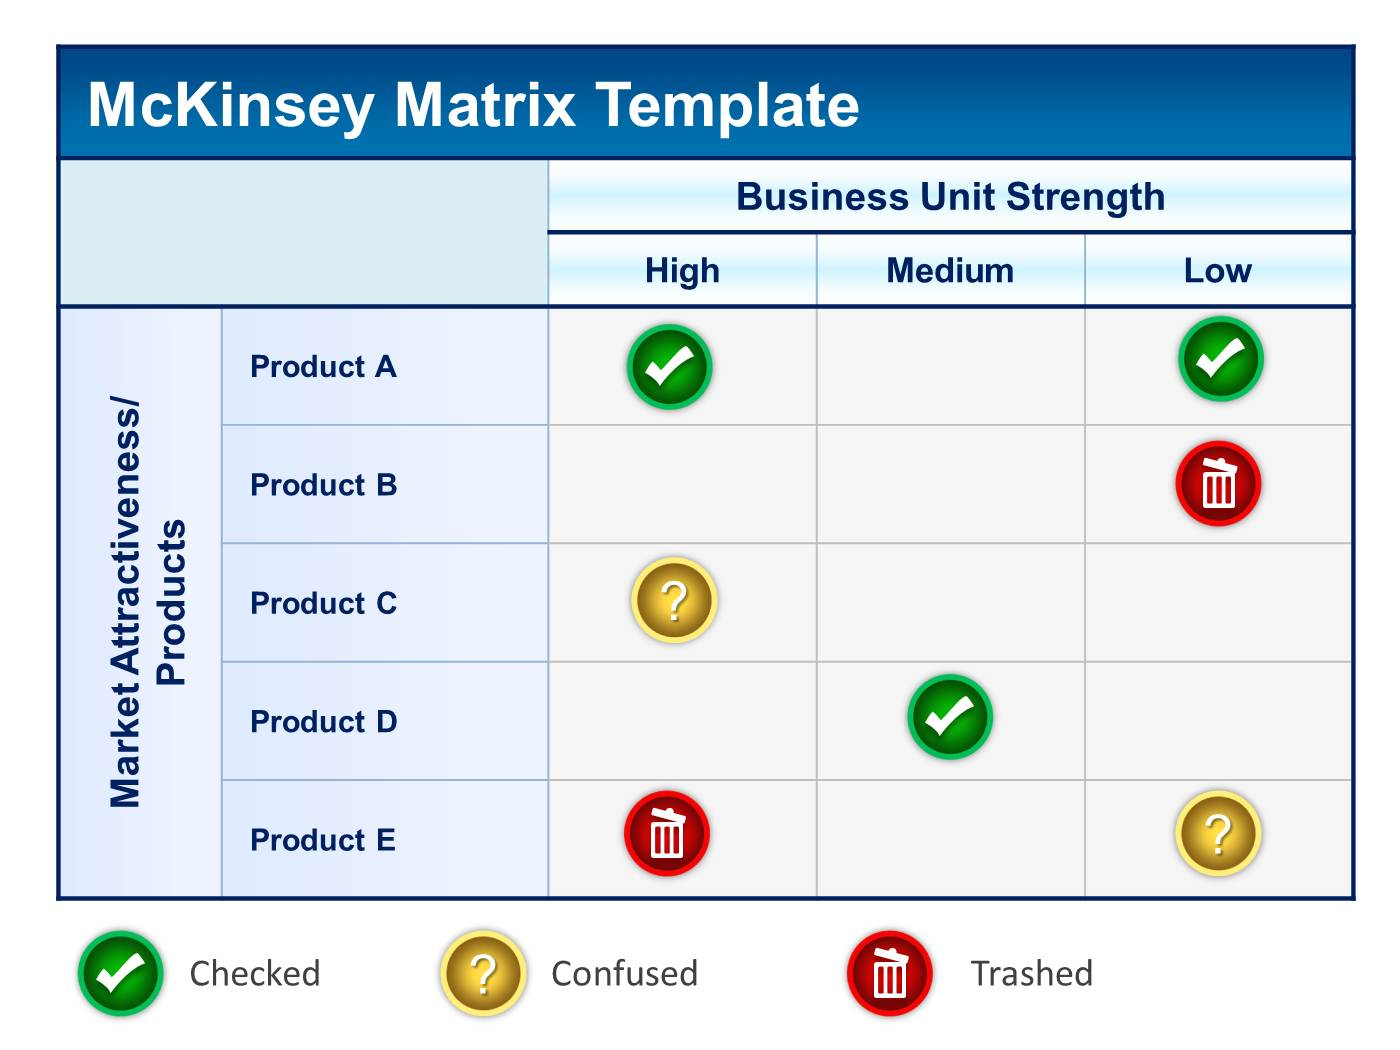 1040 mckinsey matrix powerpoint template product profitability, Powerpoint templates